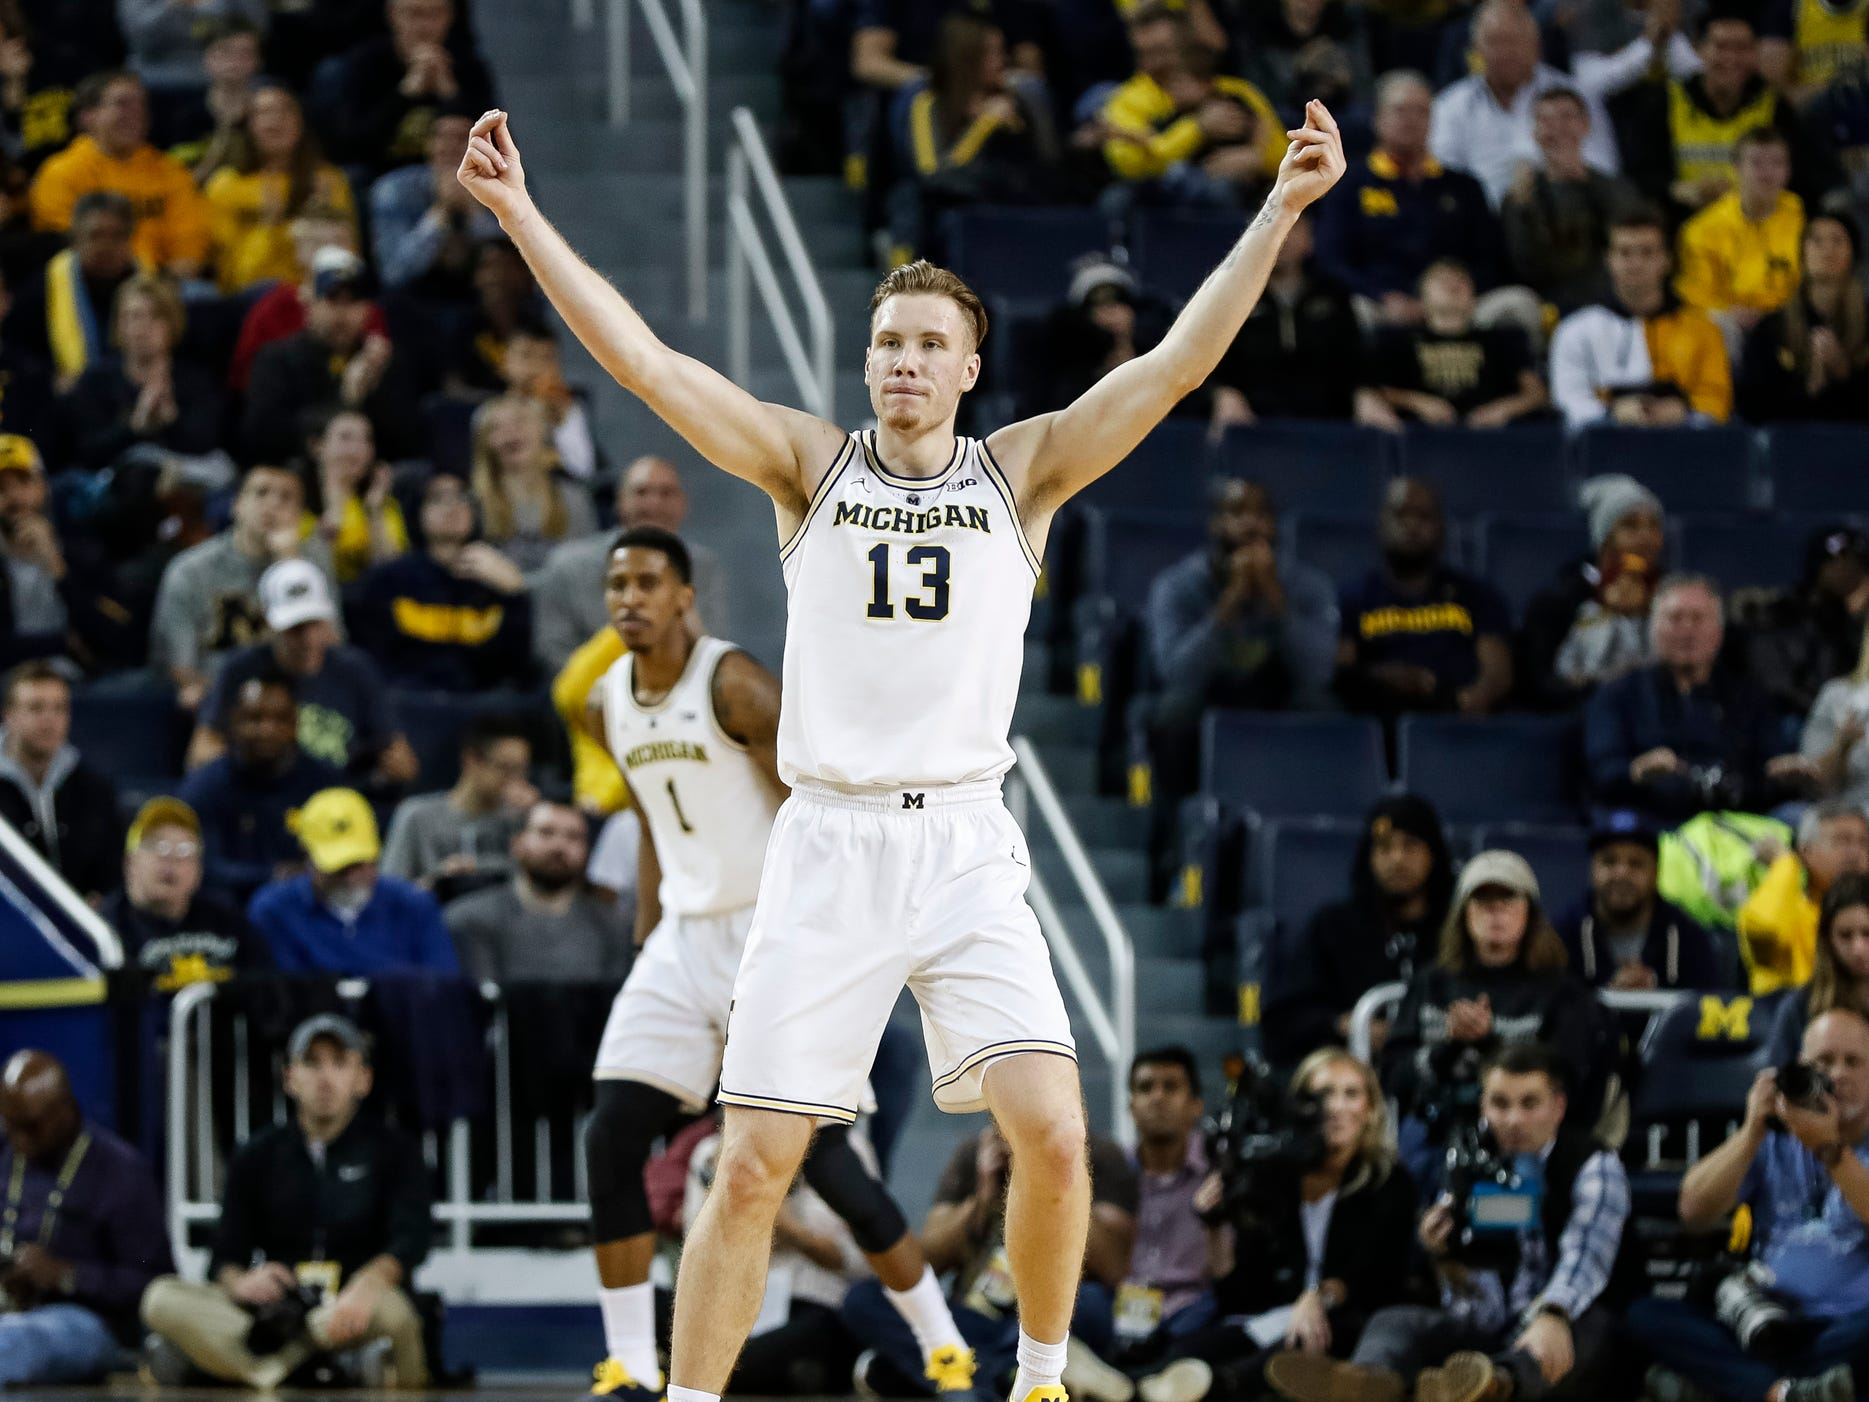 A lot has changed since our preseason rankings, as actual basketball games have been played, including conference games. Free Press writers Orion Sang, Nick Baumgardner and Chris Solari rank the Big Ten,  from 14 to 1. Let's take a look ... (stats as of Dec. 12)